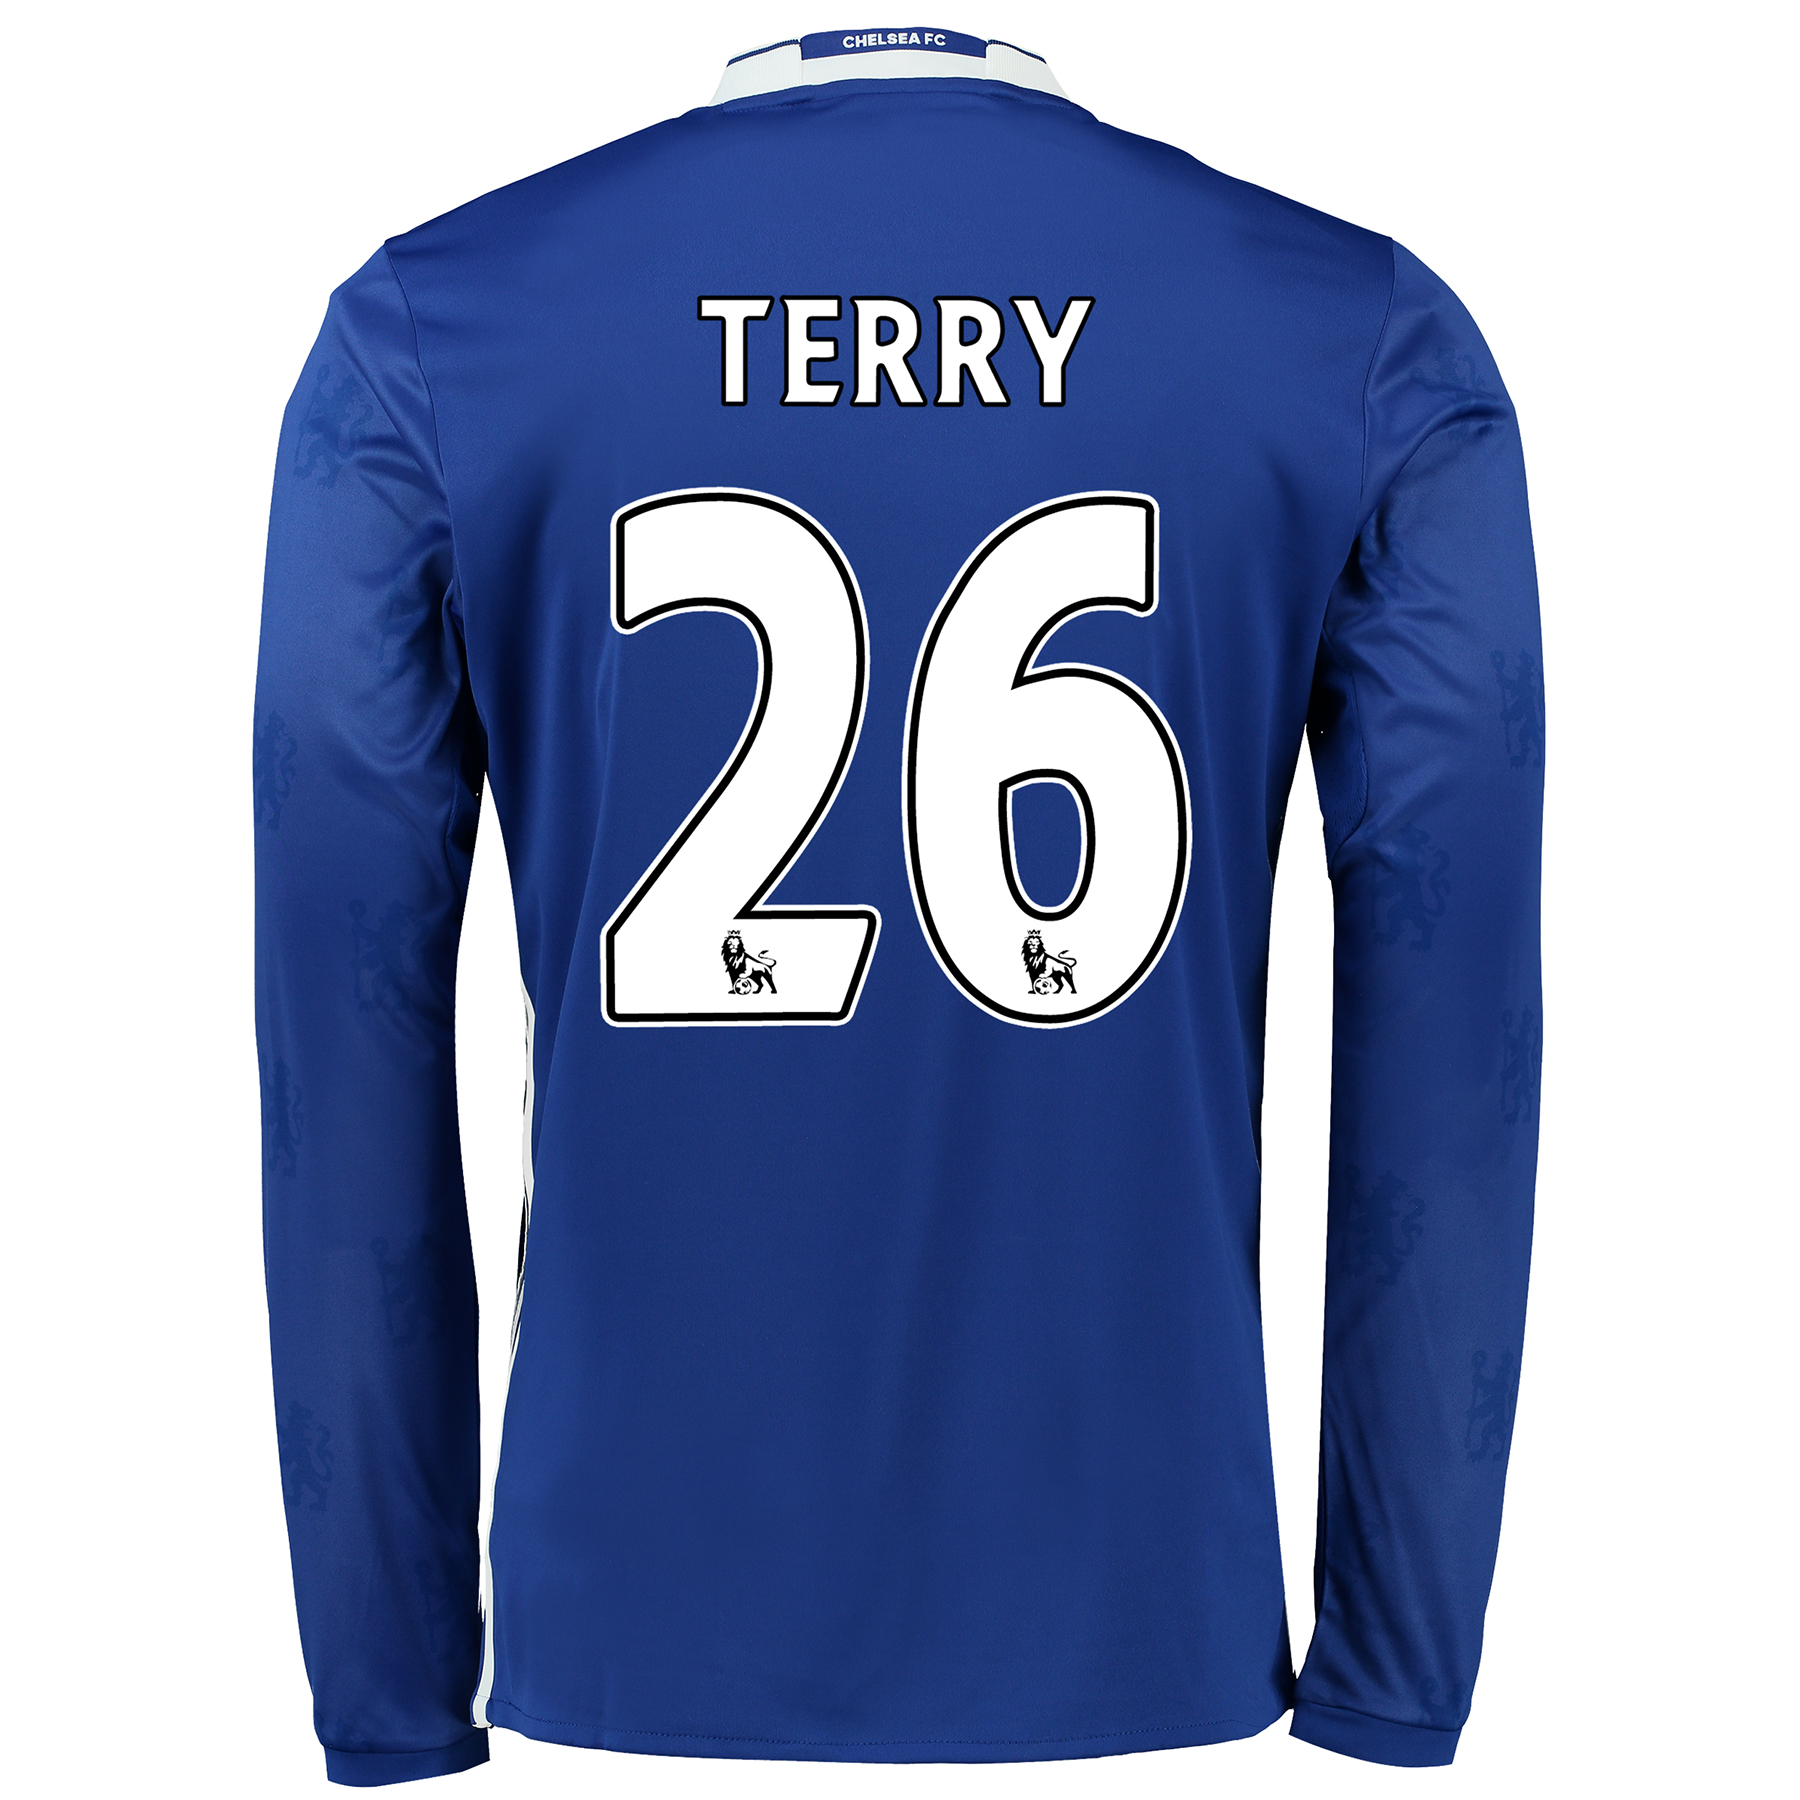 Chelsea Home Shirt 2016-17 - Long Sleeve with Terry 26 printing